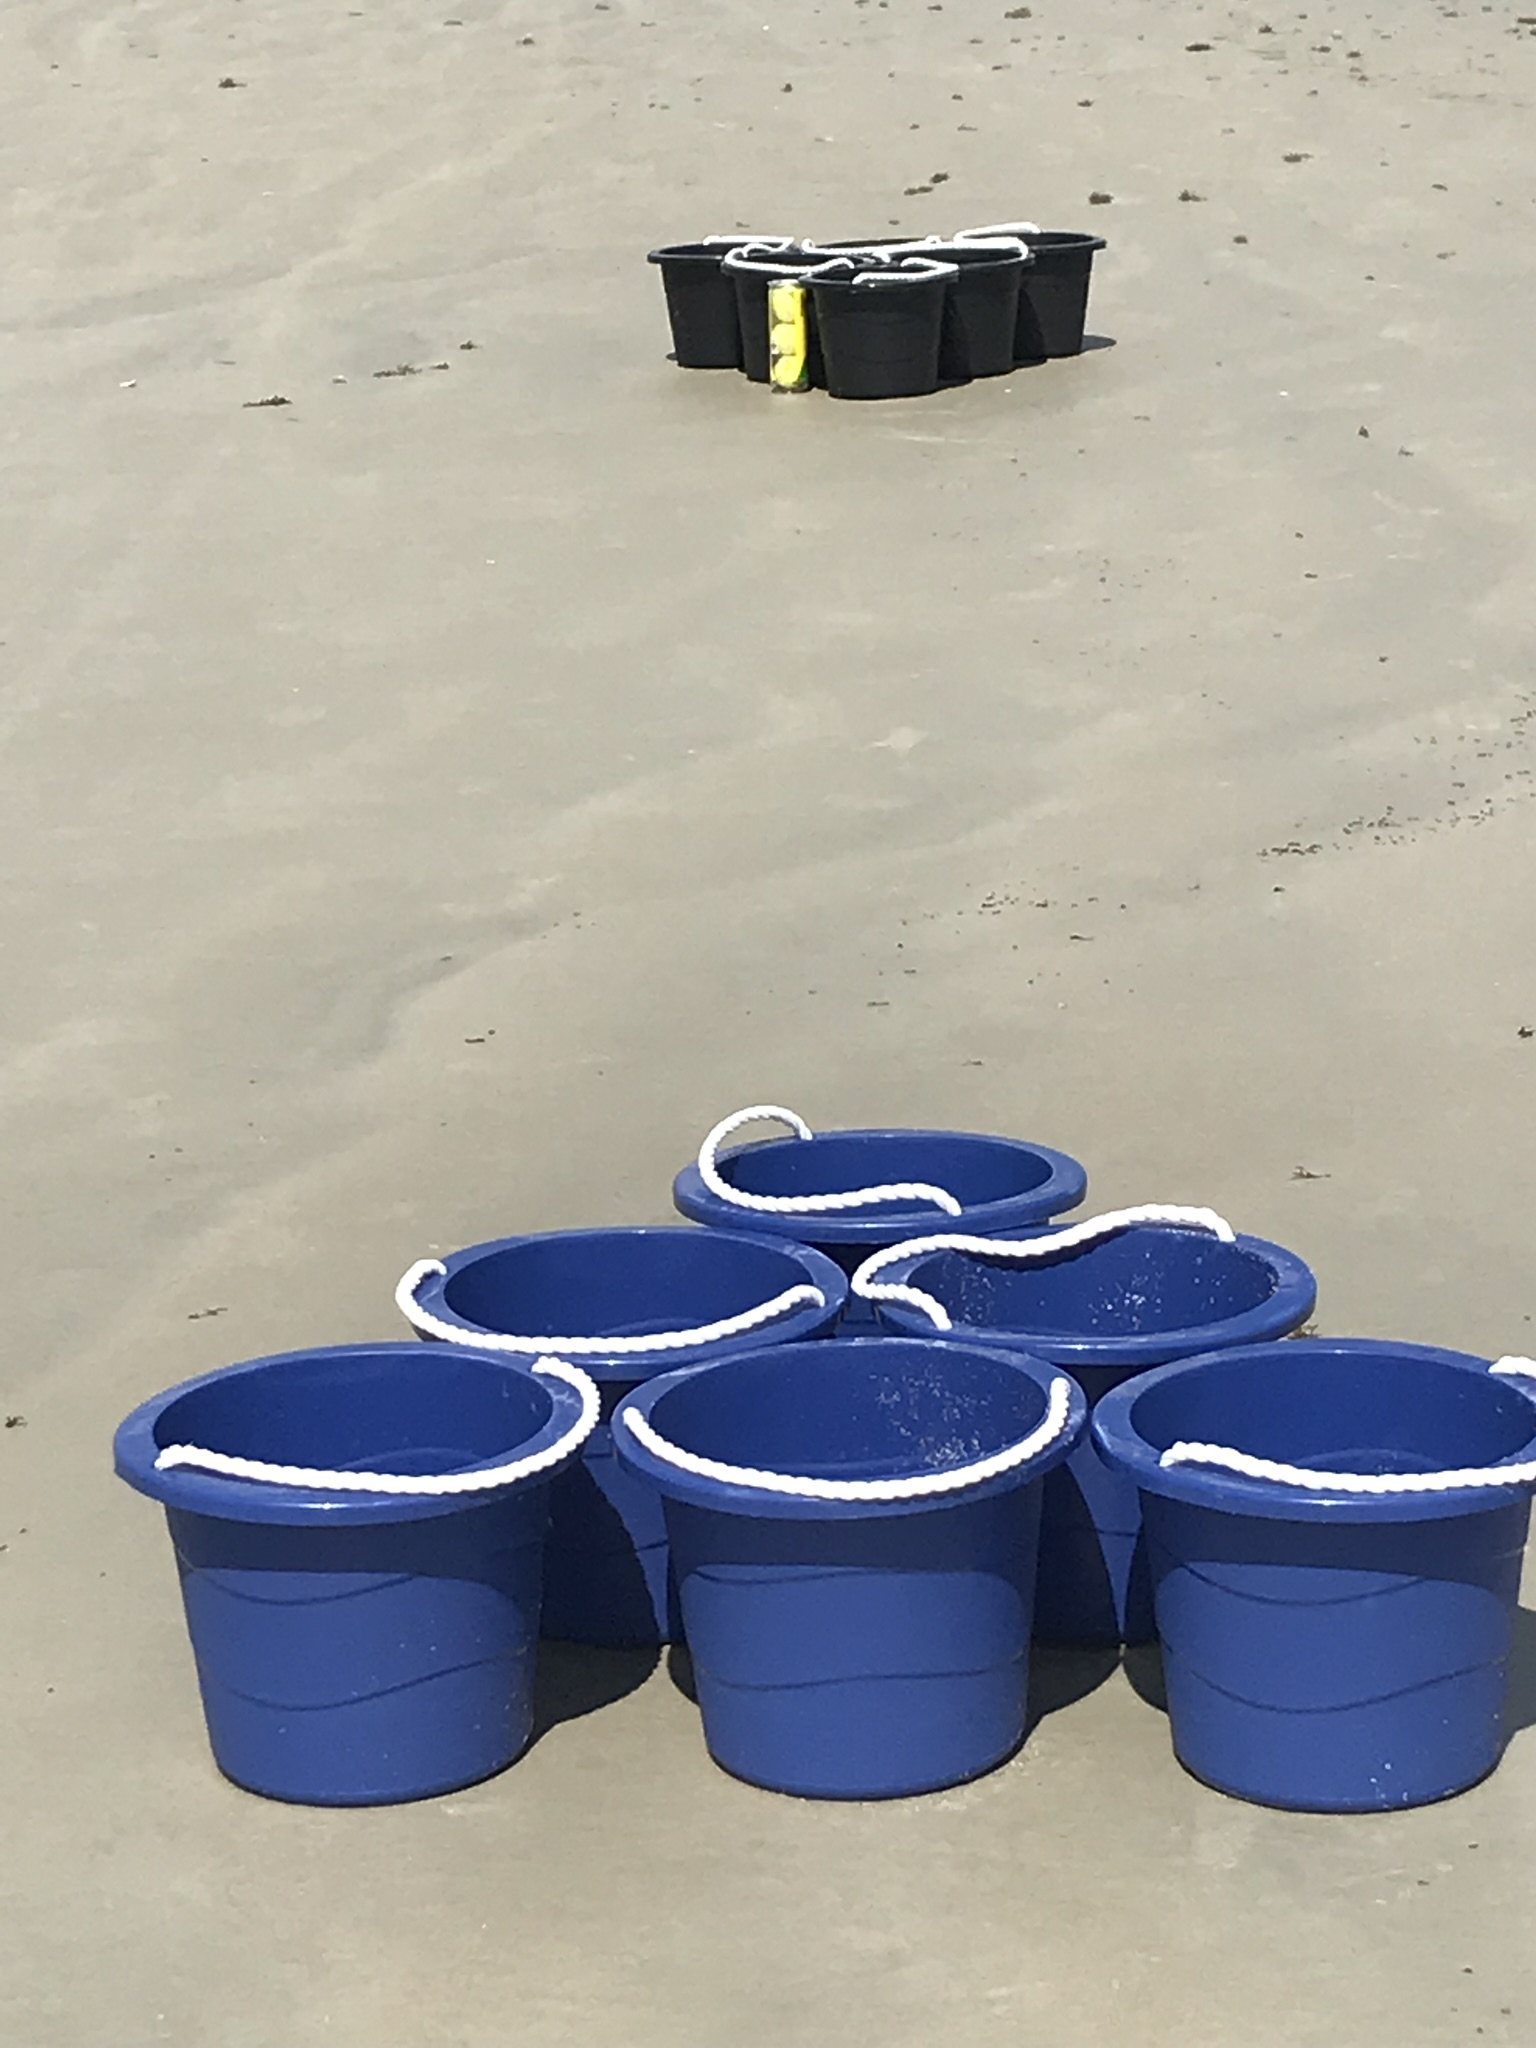 join the summer beach fun in New Smyrna Beach with games